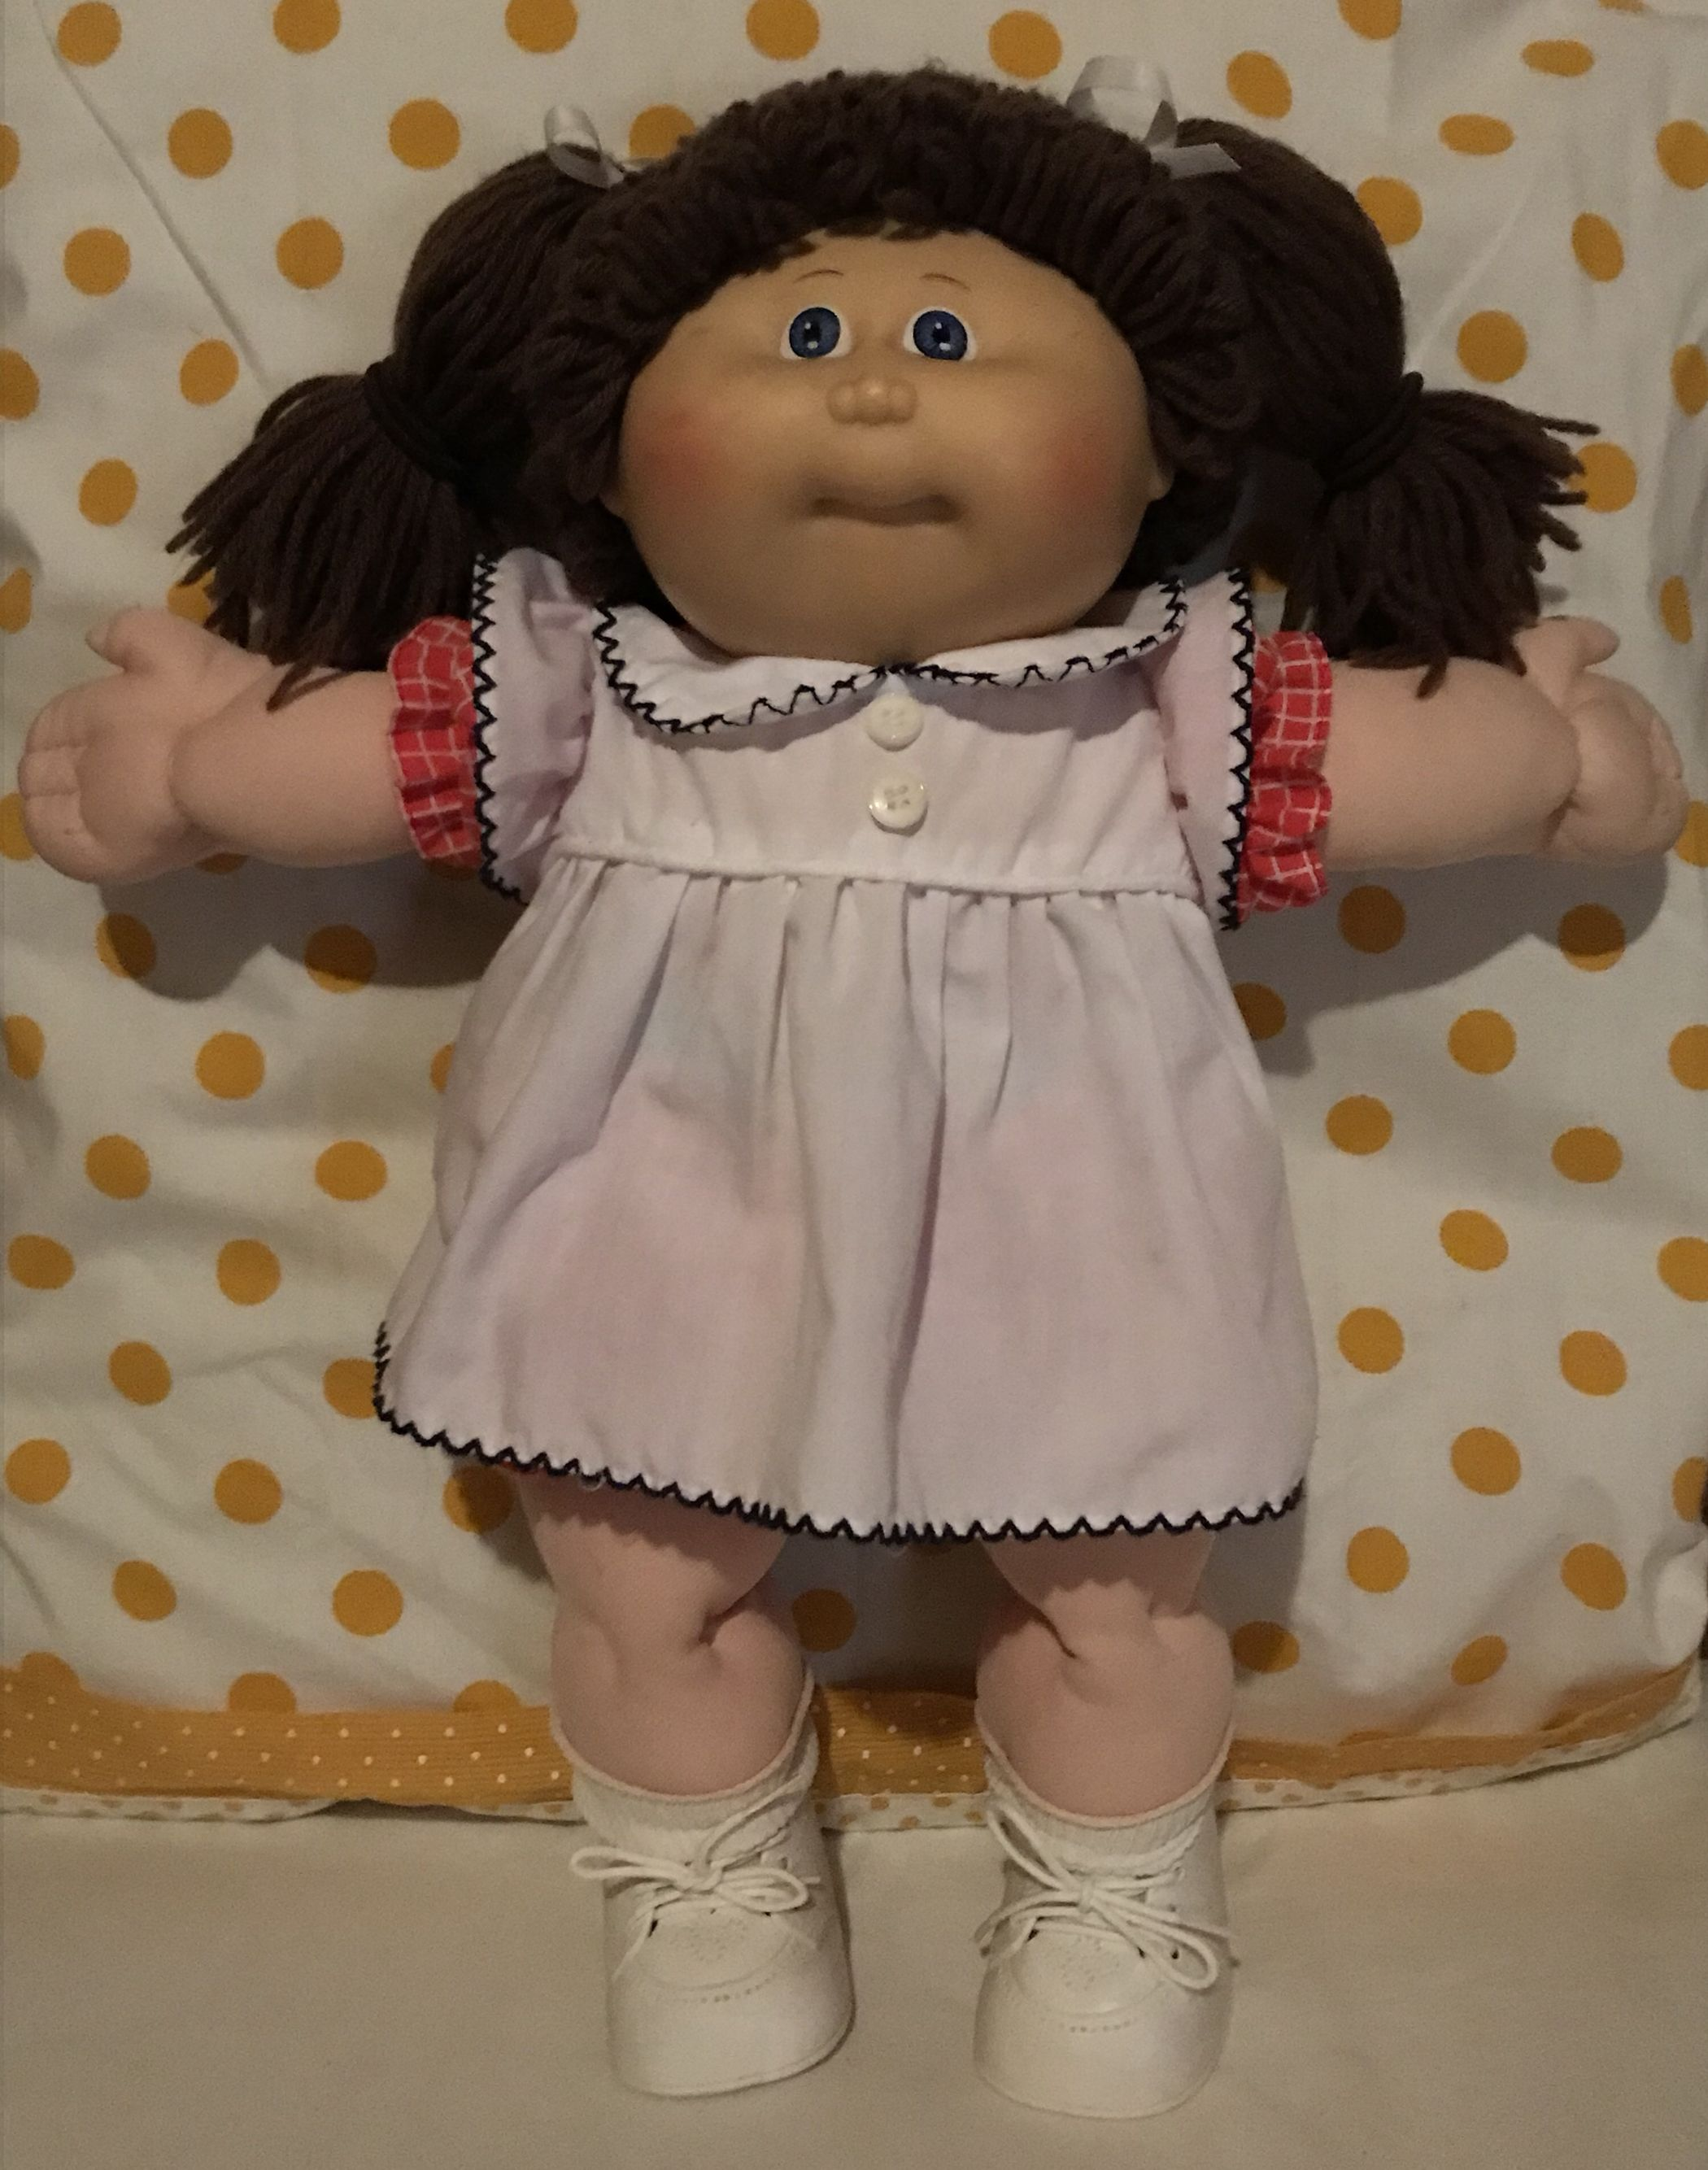 Vintage Cabbage Patch Kids Doll 1985 Hm 1 Ut Factory Brown Poodle Style Hair With Violet Eye Cabbage Patch Kids Dolls Cabbage Patch Kids Cabbage Patch Dolls